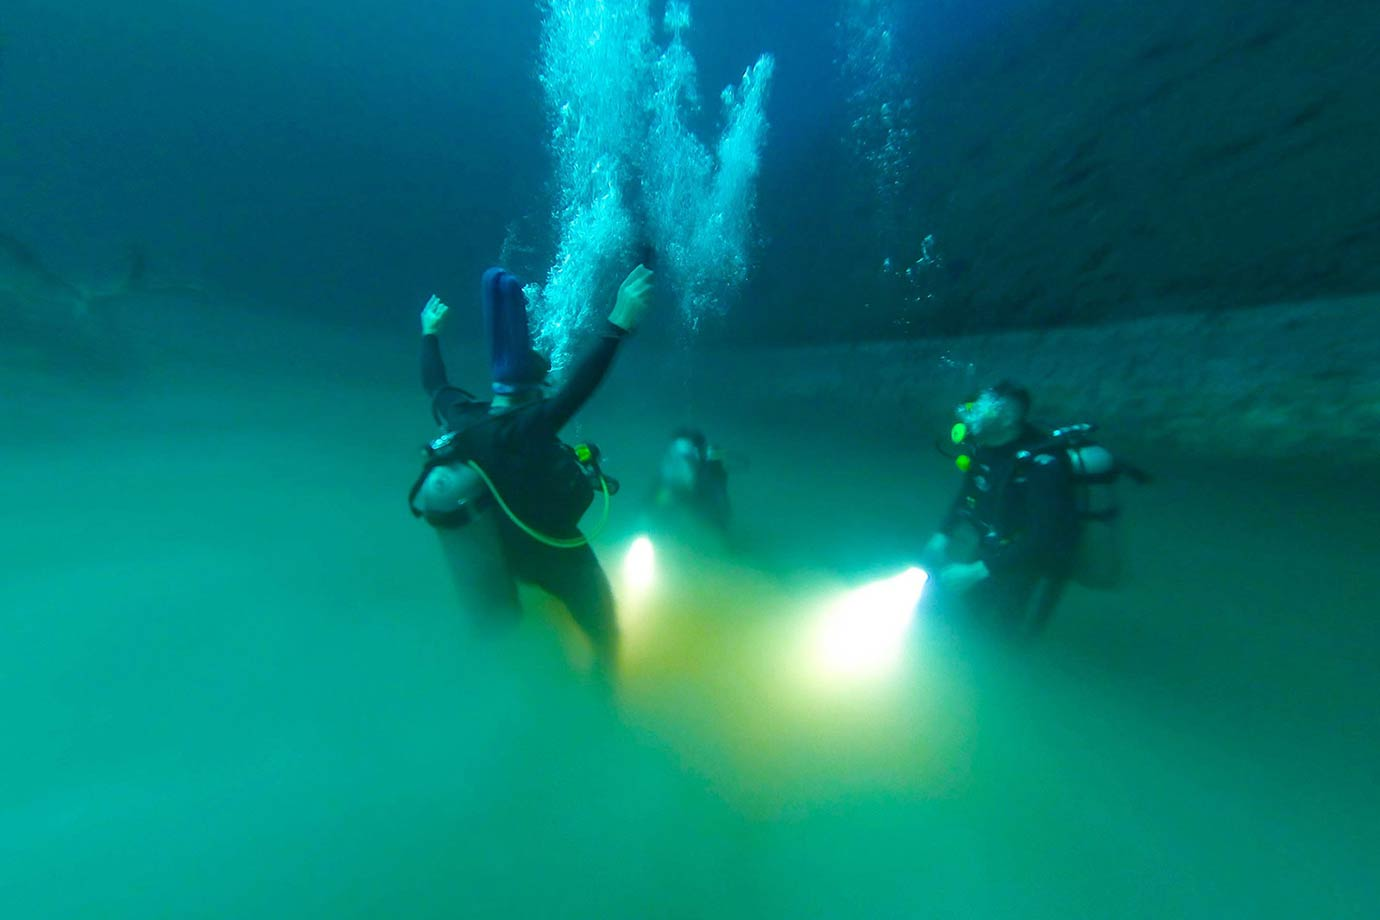 Diving into the hydrogen sulphate clould at Angelita